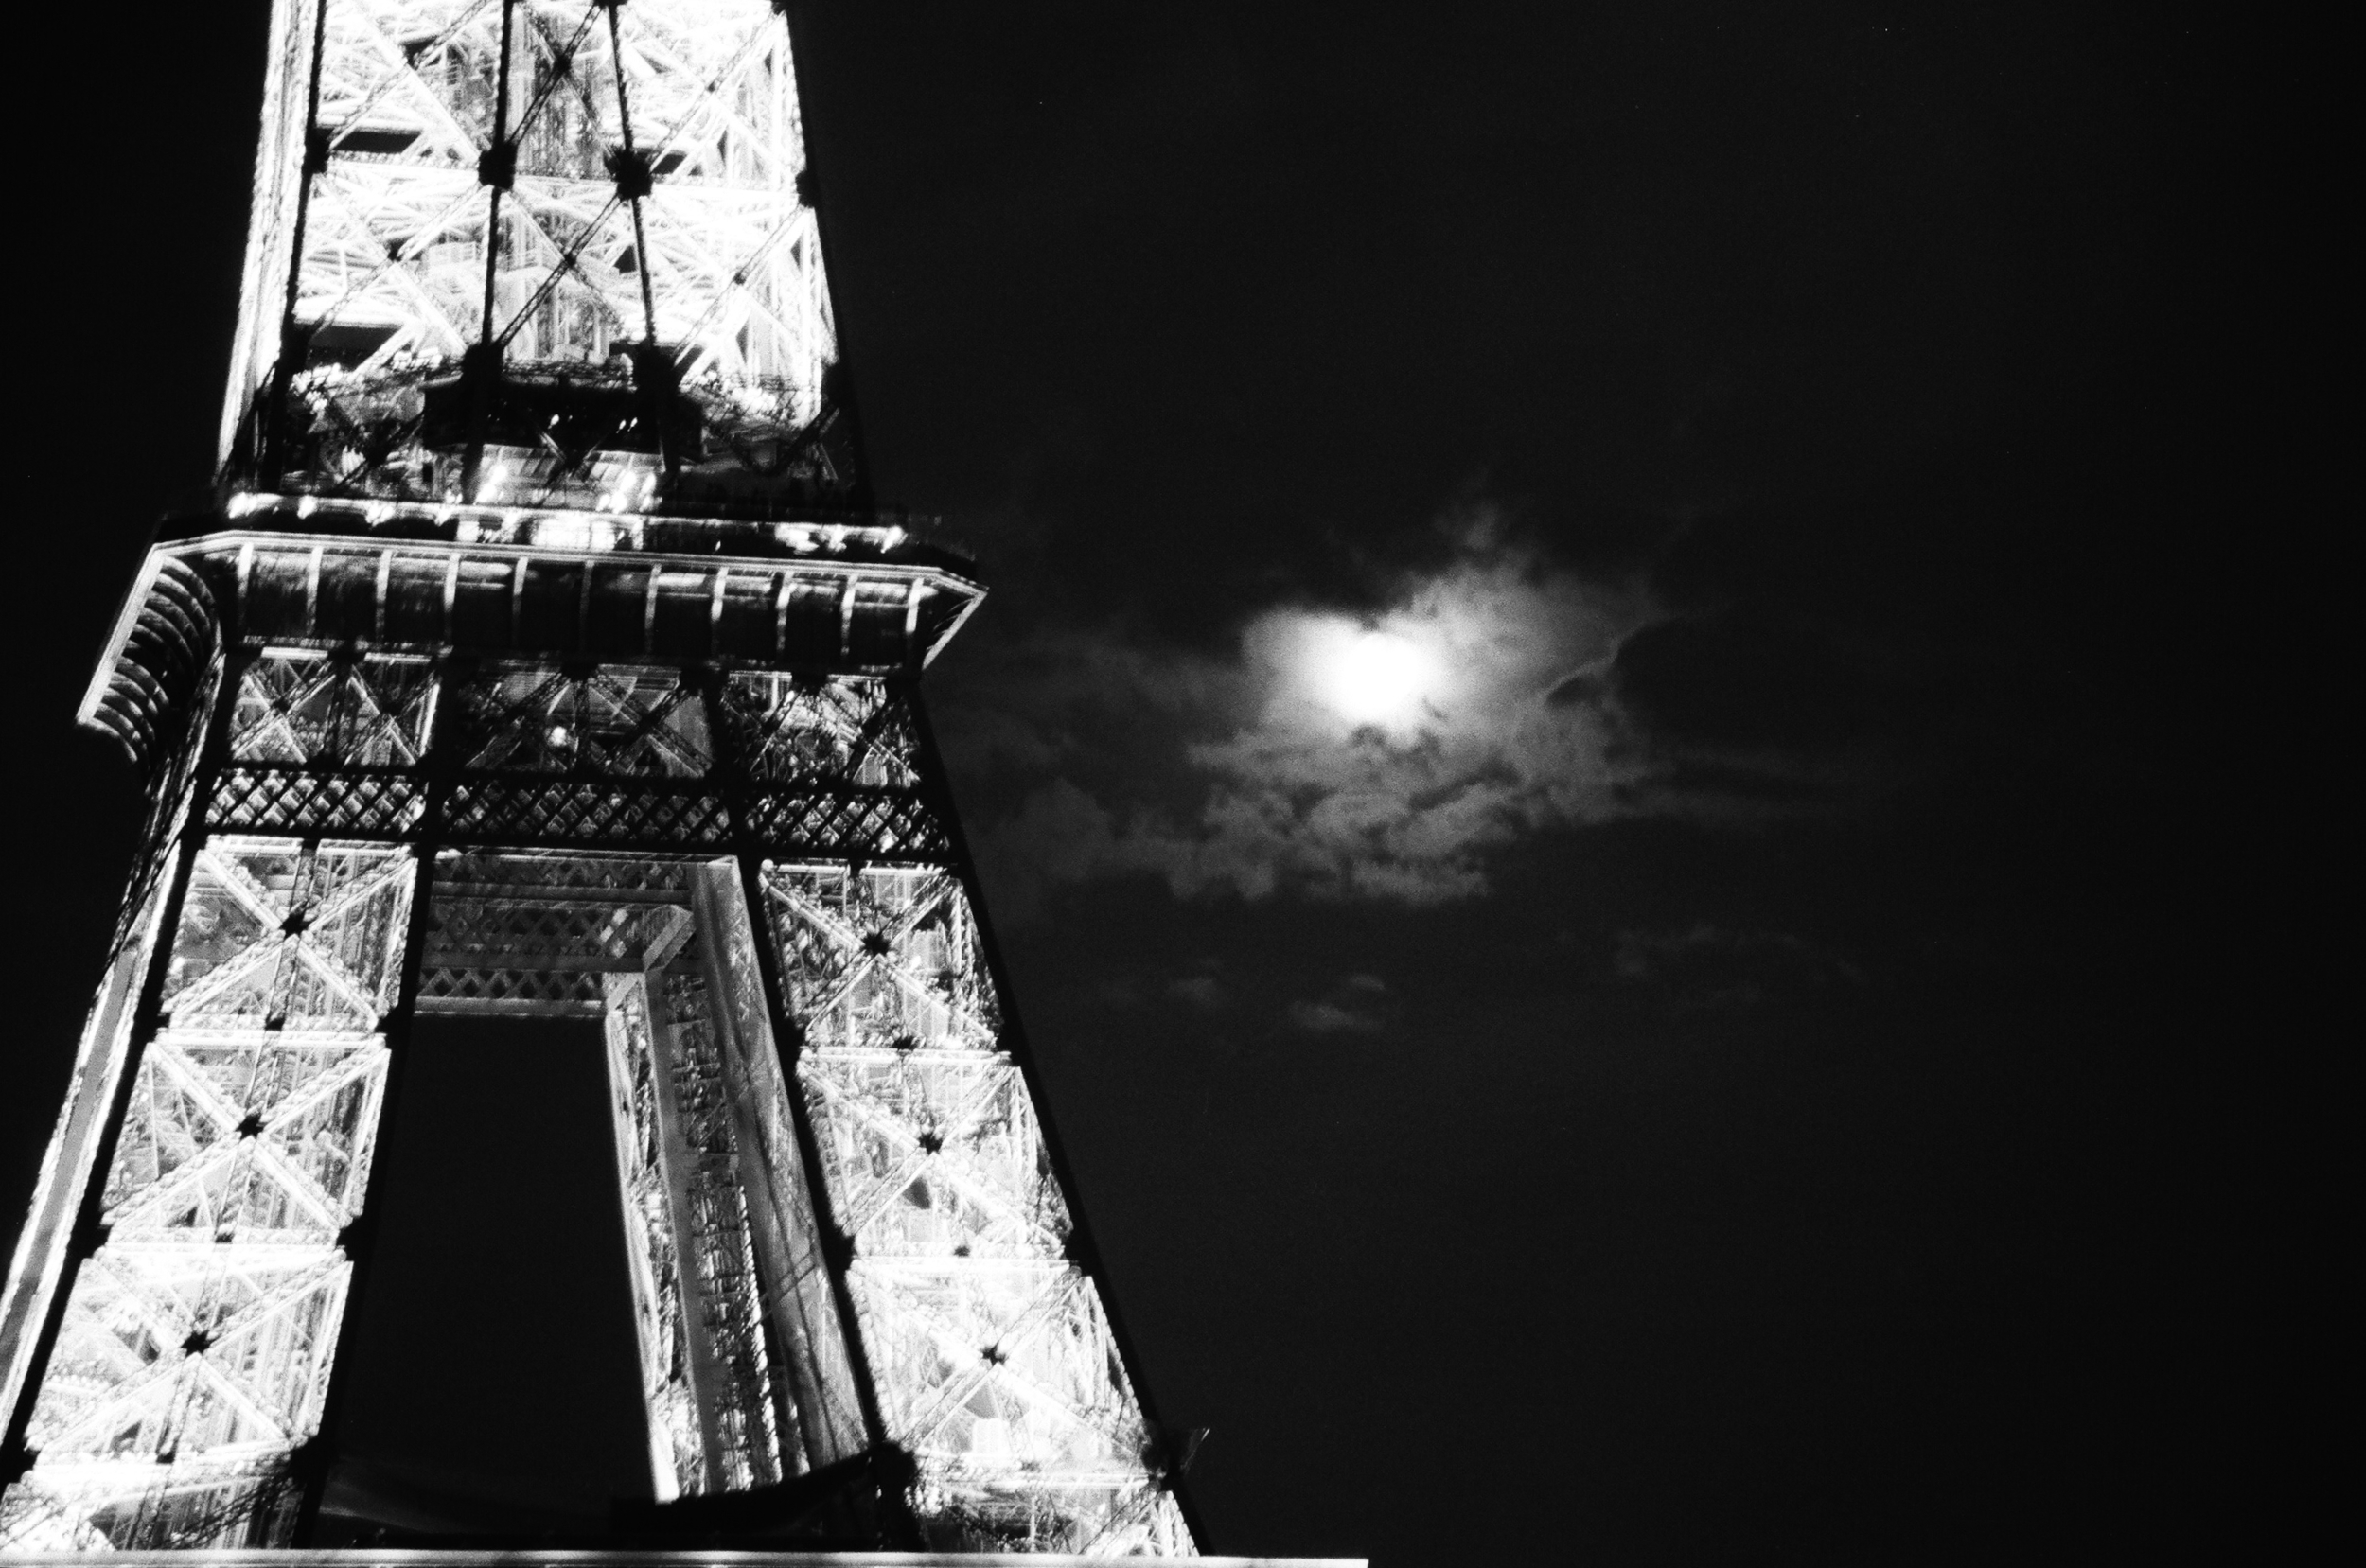 Paris - France B&W Image 6.jpg